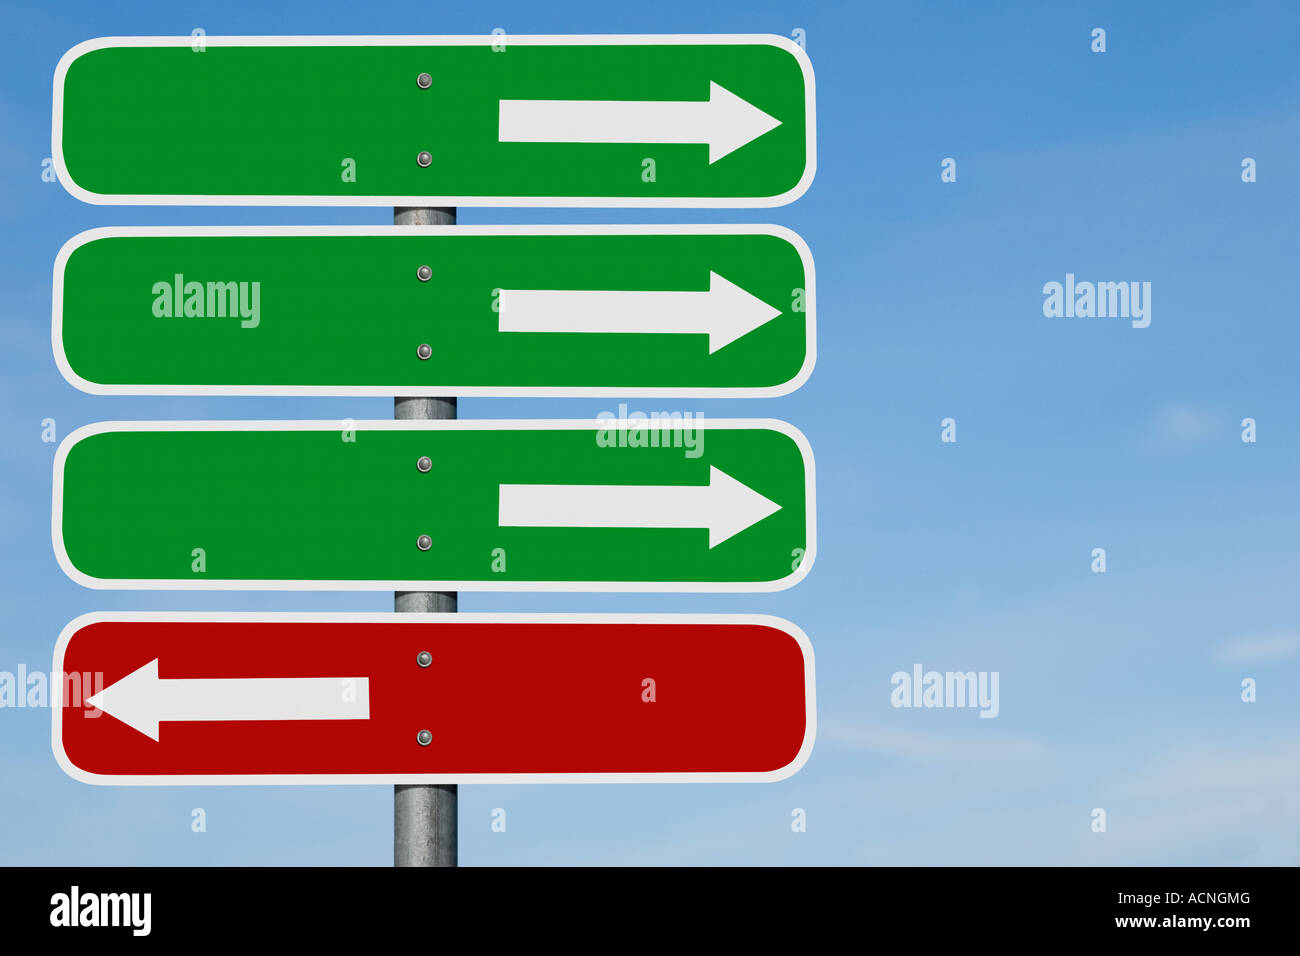 three blank green arrow signs over blank red sign with opposite